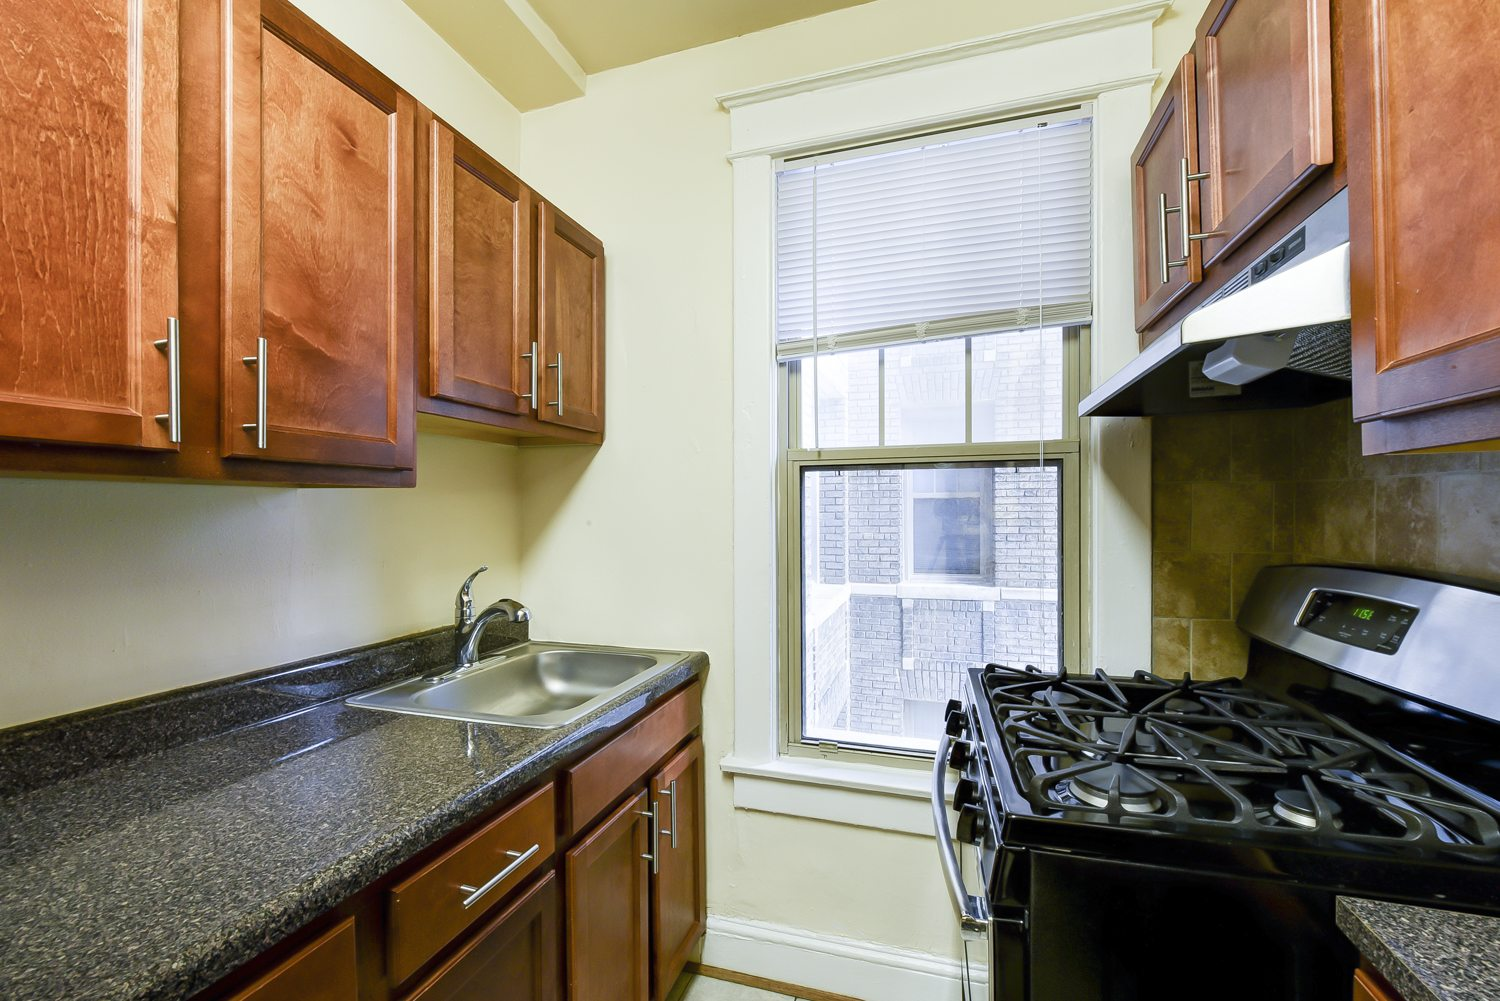 The-Cortland-Kitchen-Cabinets-Washington-DC-Apartment-Rental | WC Smith